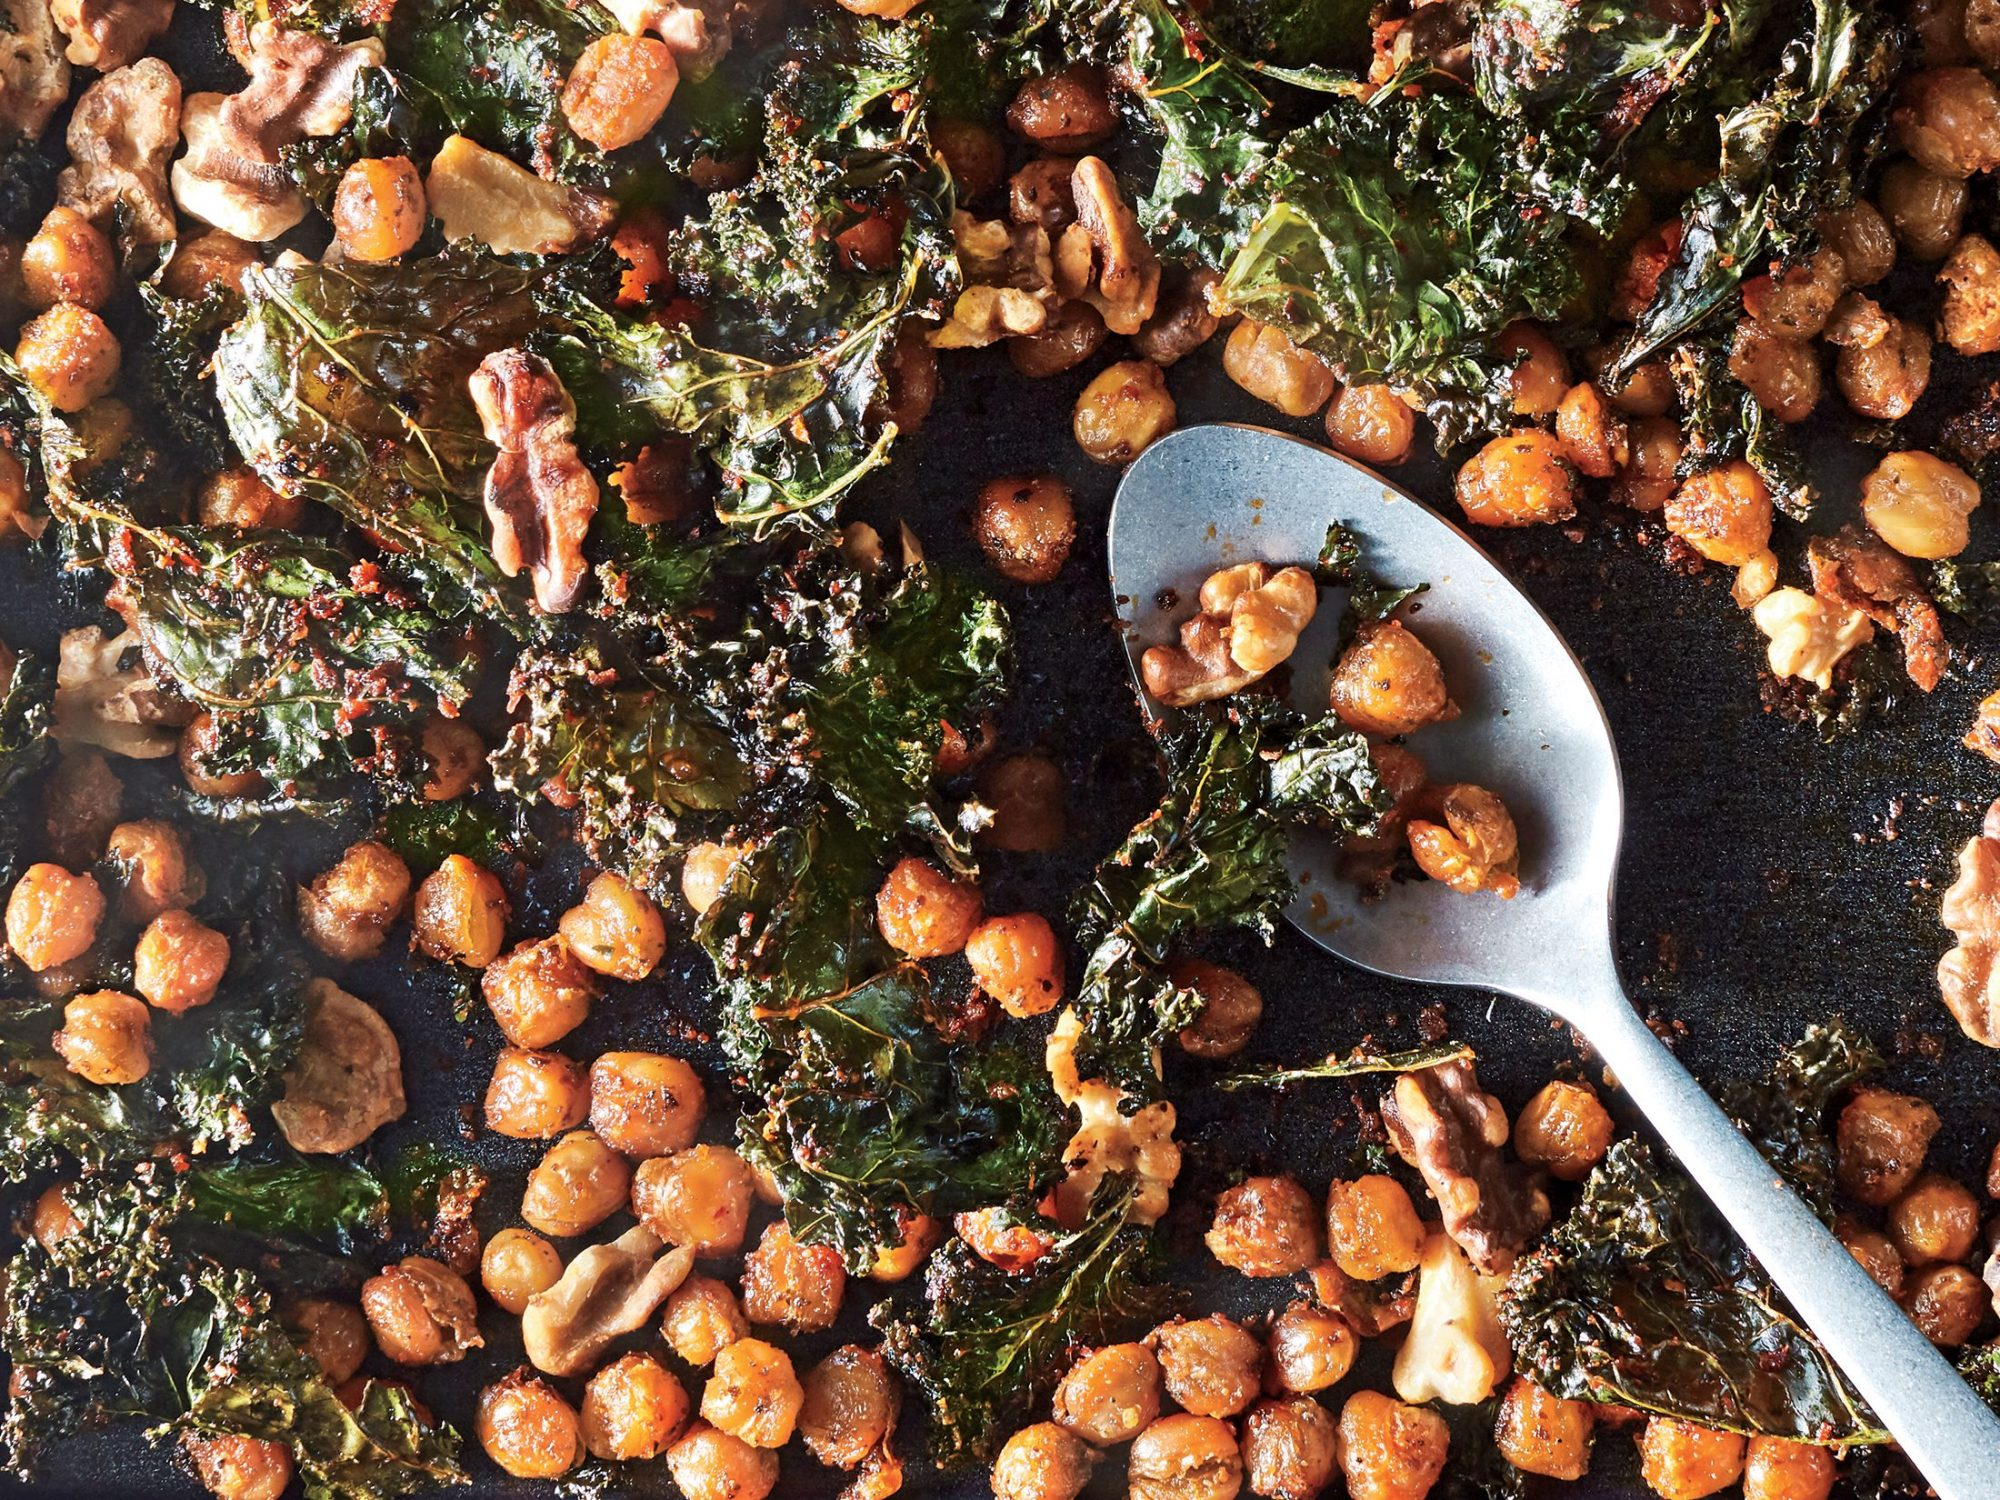 Roasted Kale and Chickpea Snack Mix